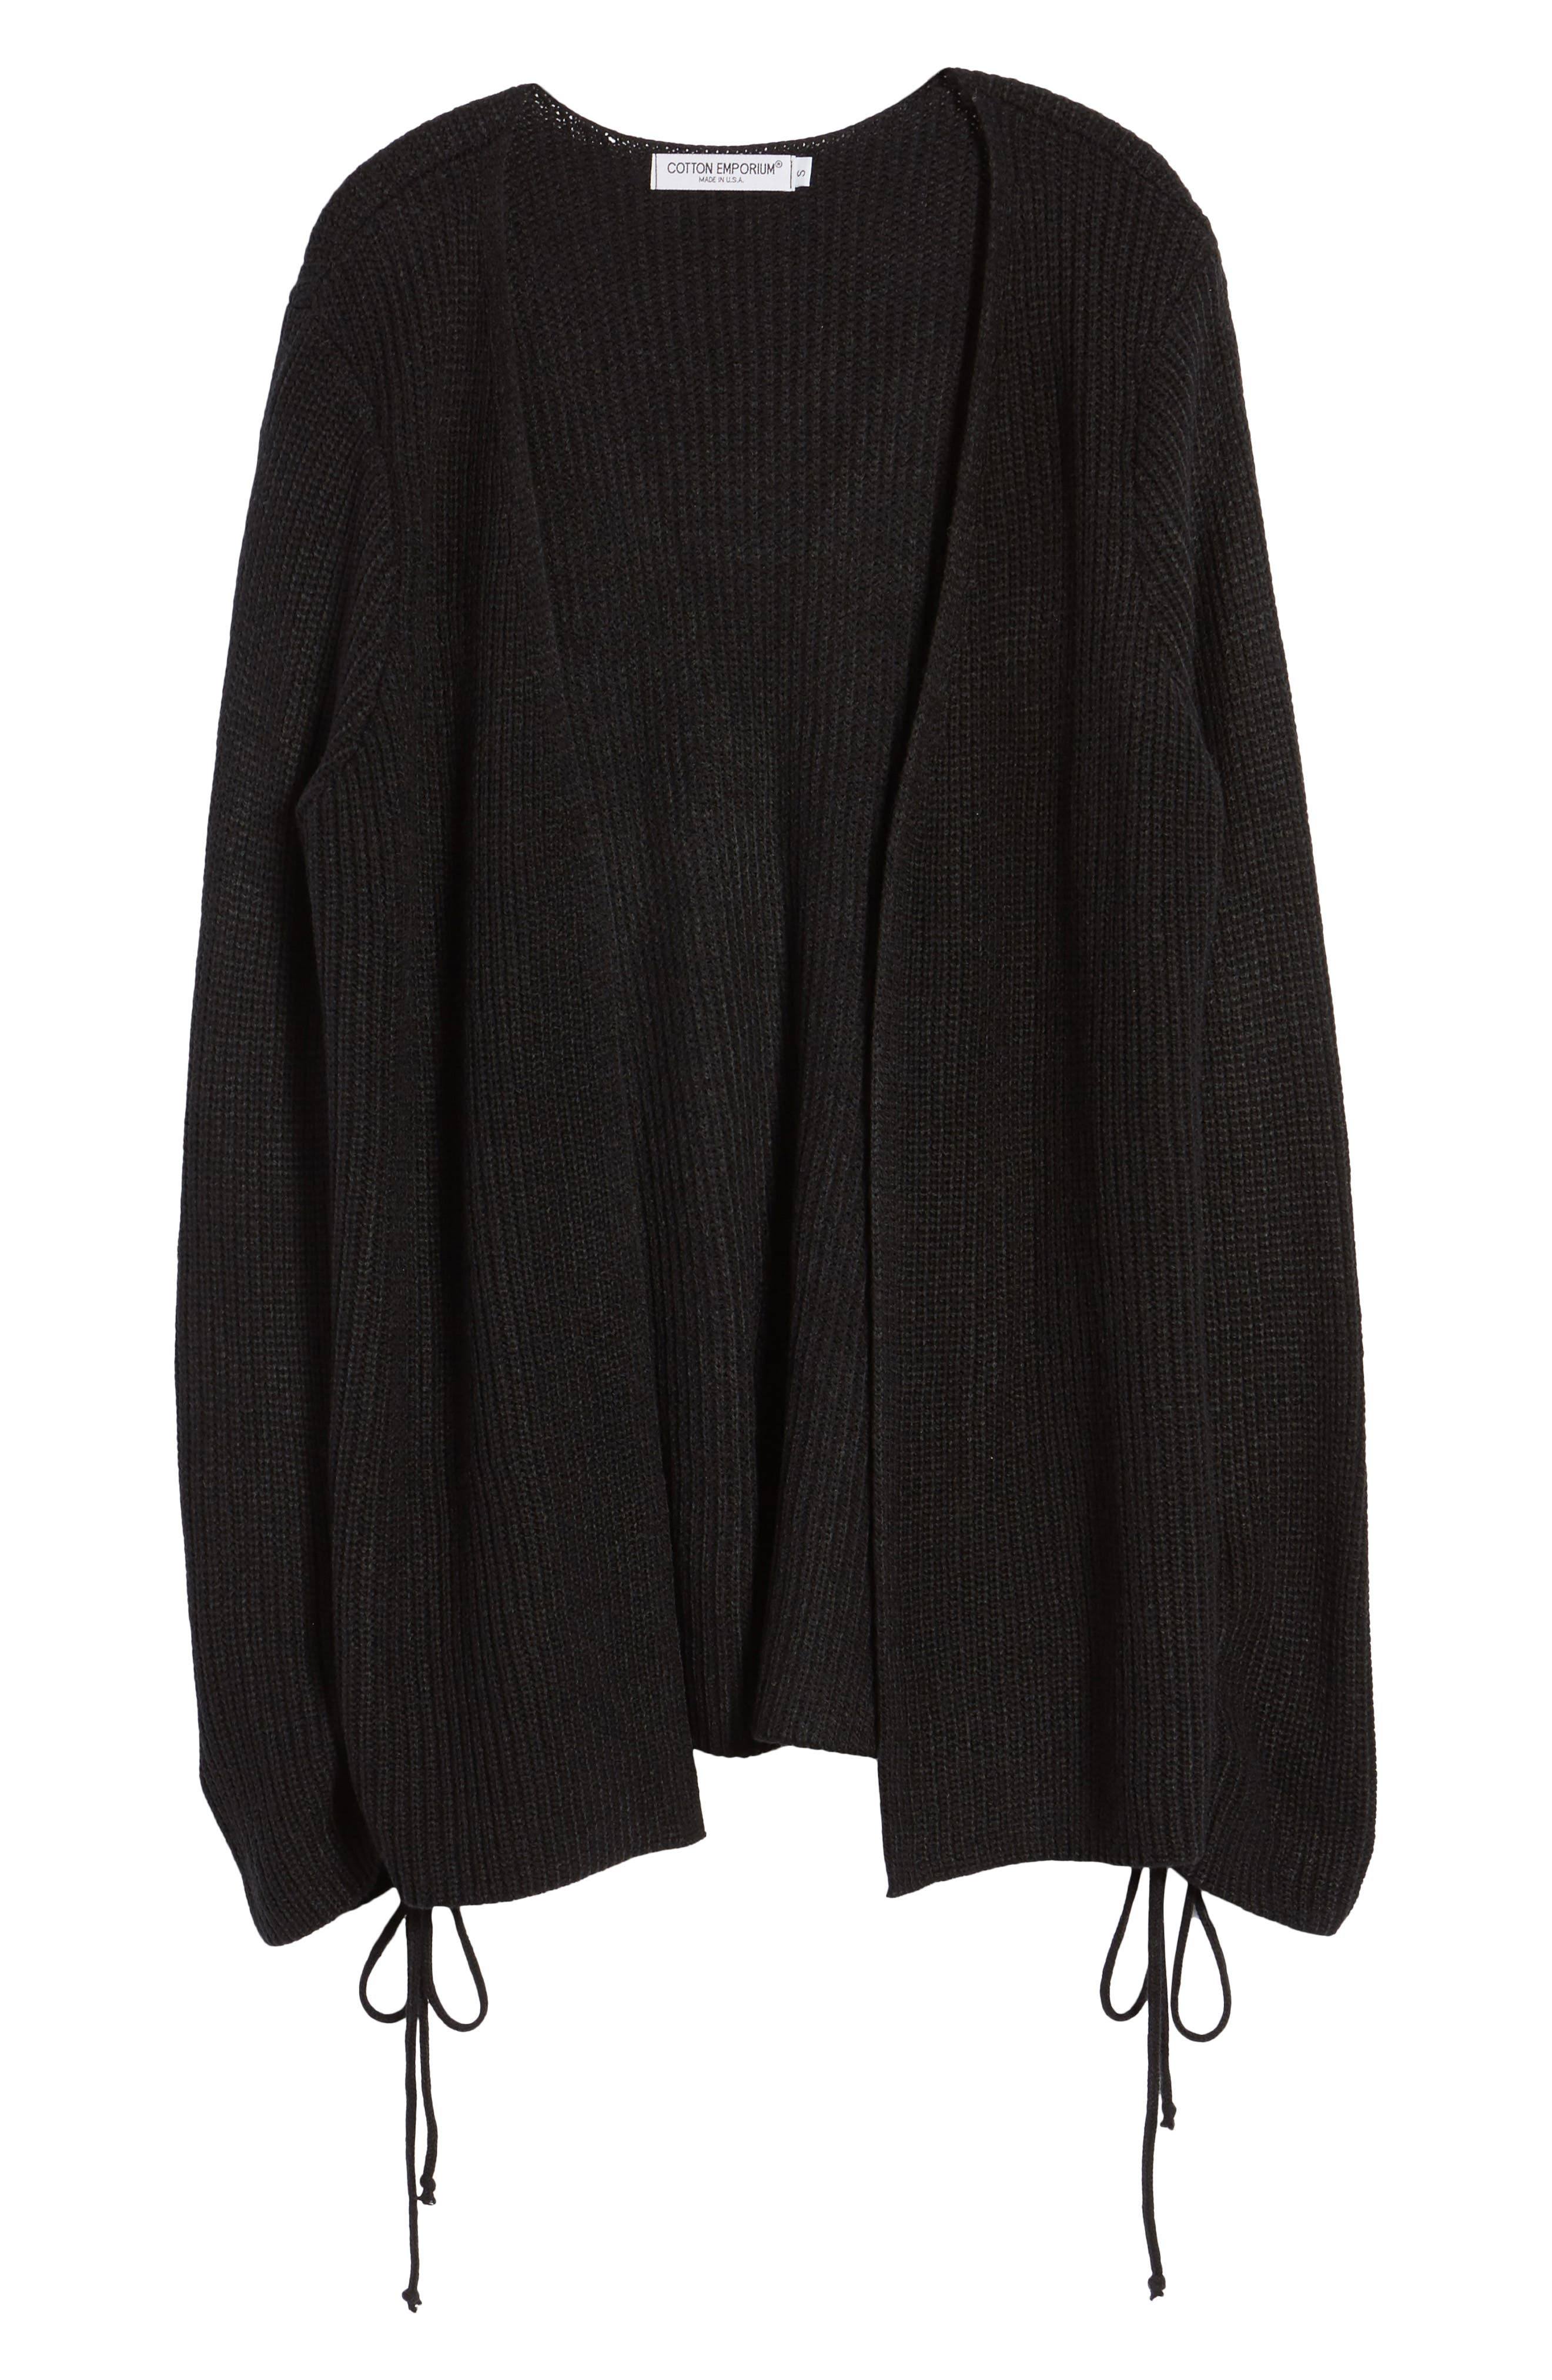 Tie Sleeve Cardigan,                             Alternate thumbnail 6, color,                             Black